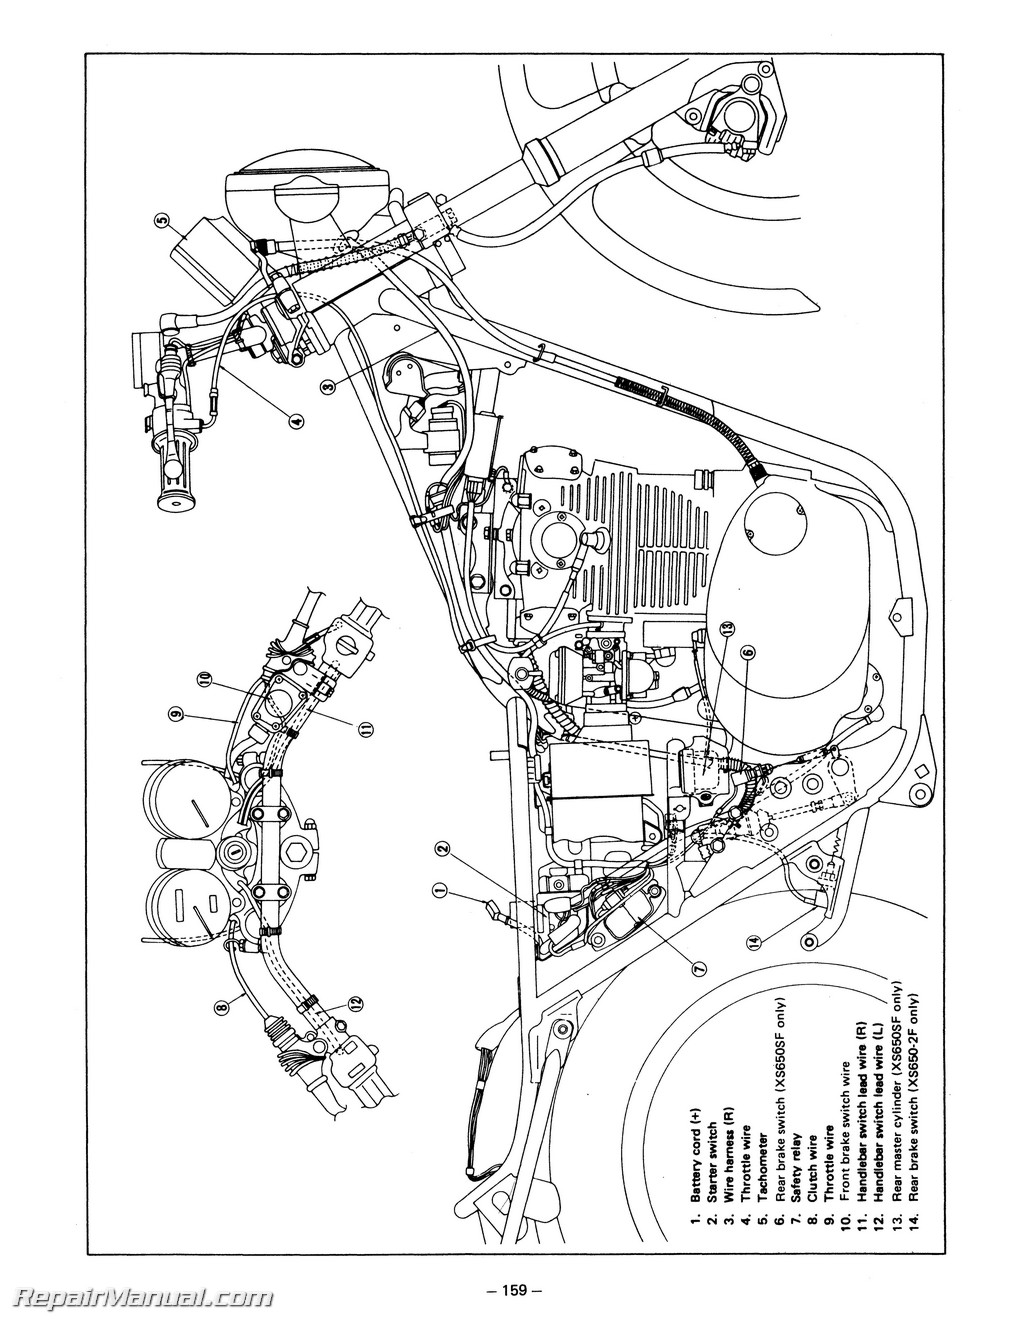 1981 yamaha xs650 ignition wiring diagram wiring library Yamaha Seca Wiring 1978 1981 yamaha xs650 service manual solenoid switch wiring diagram